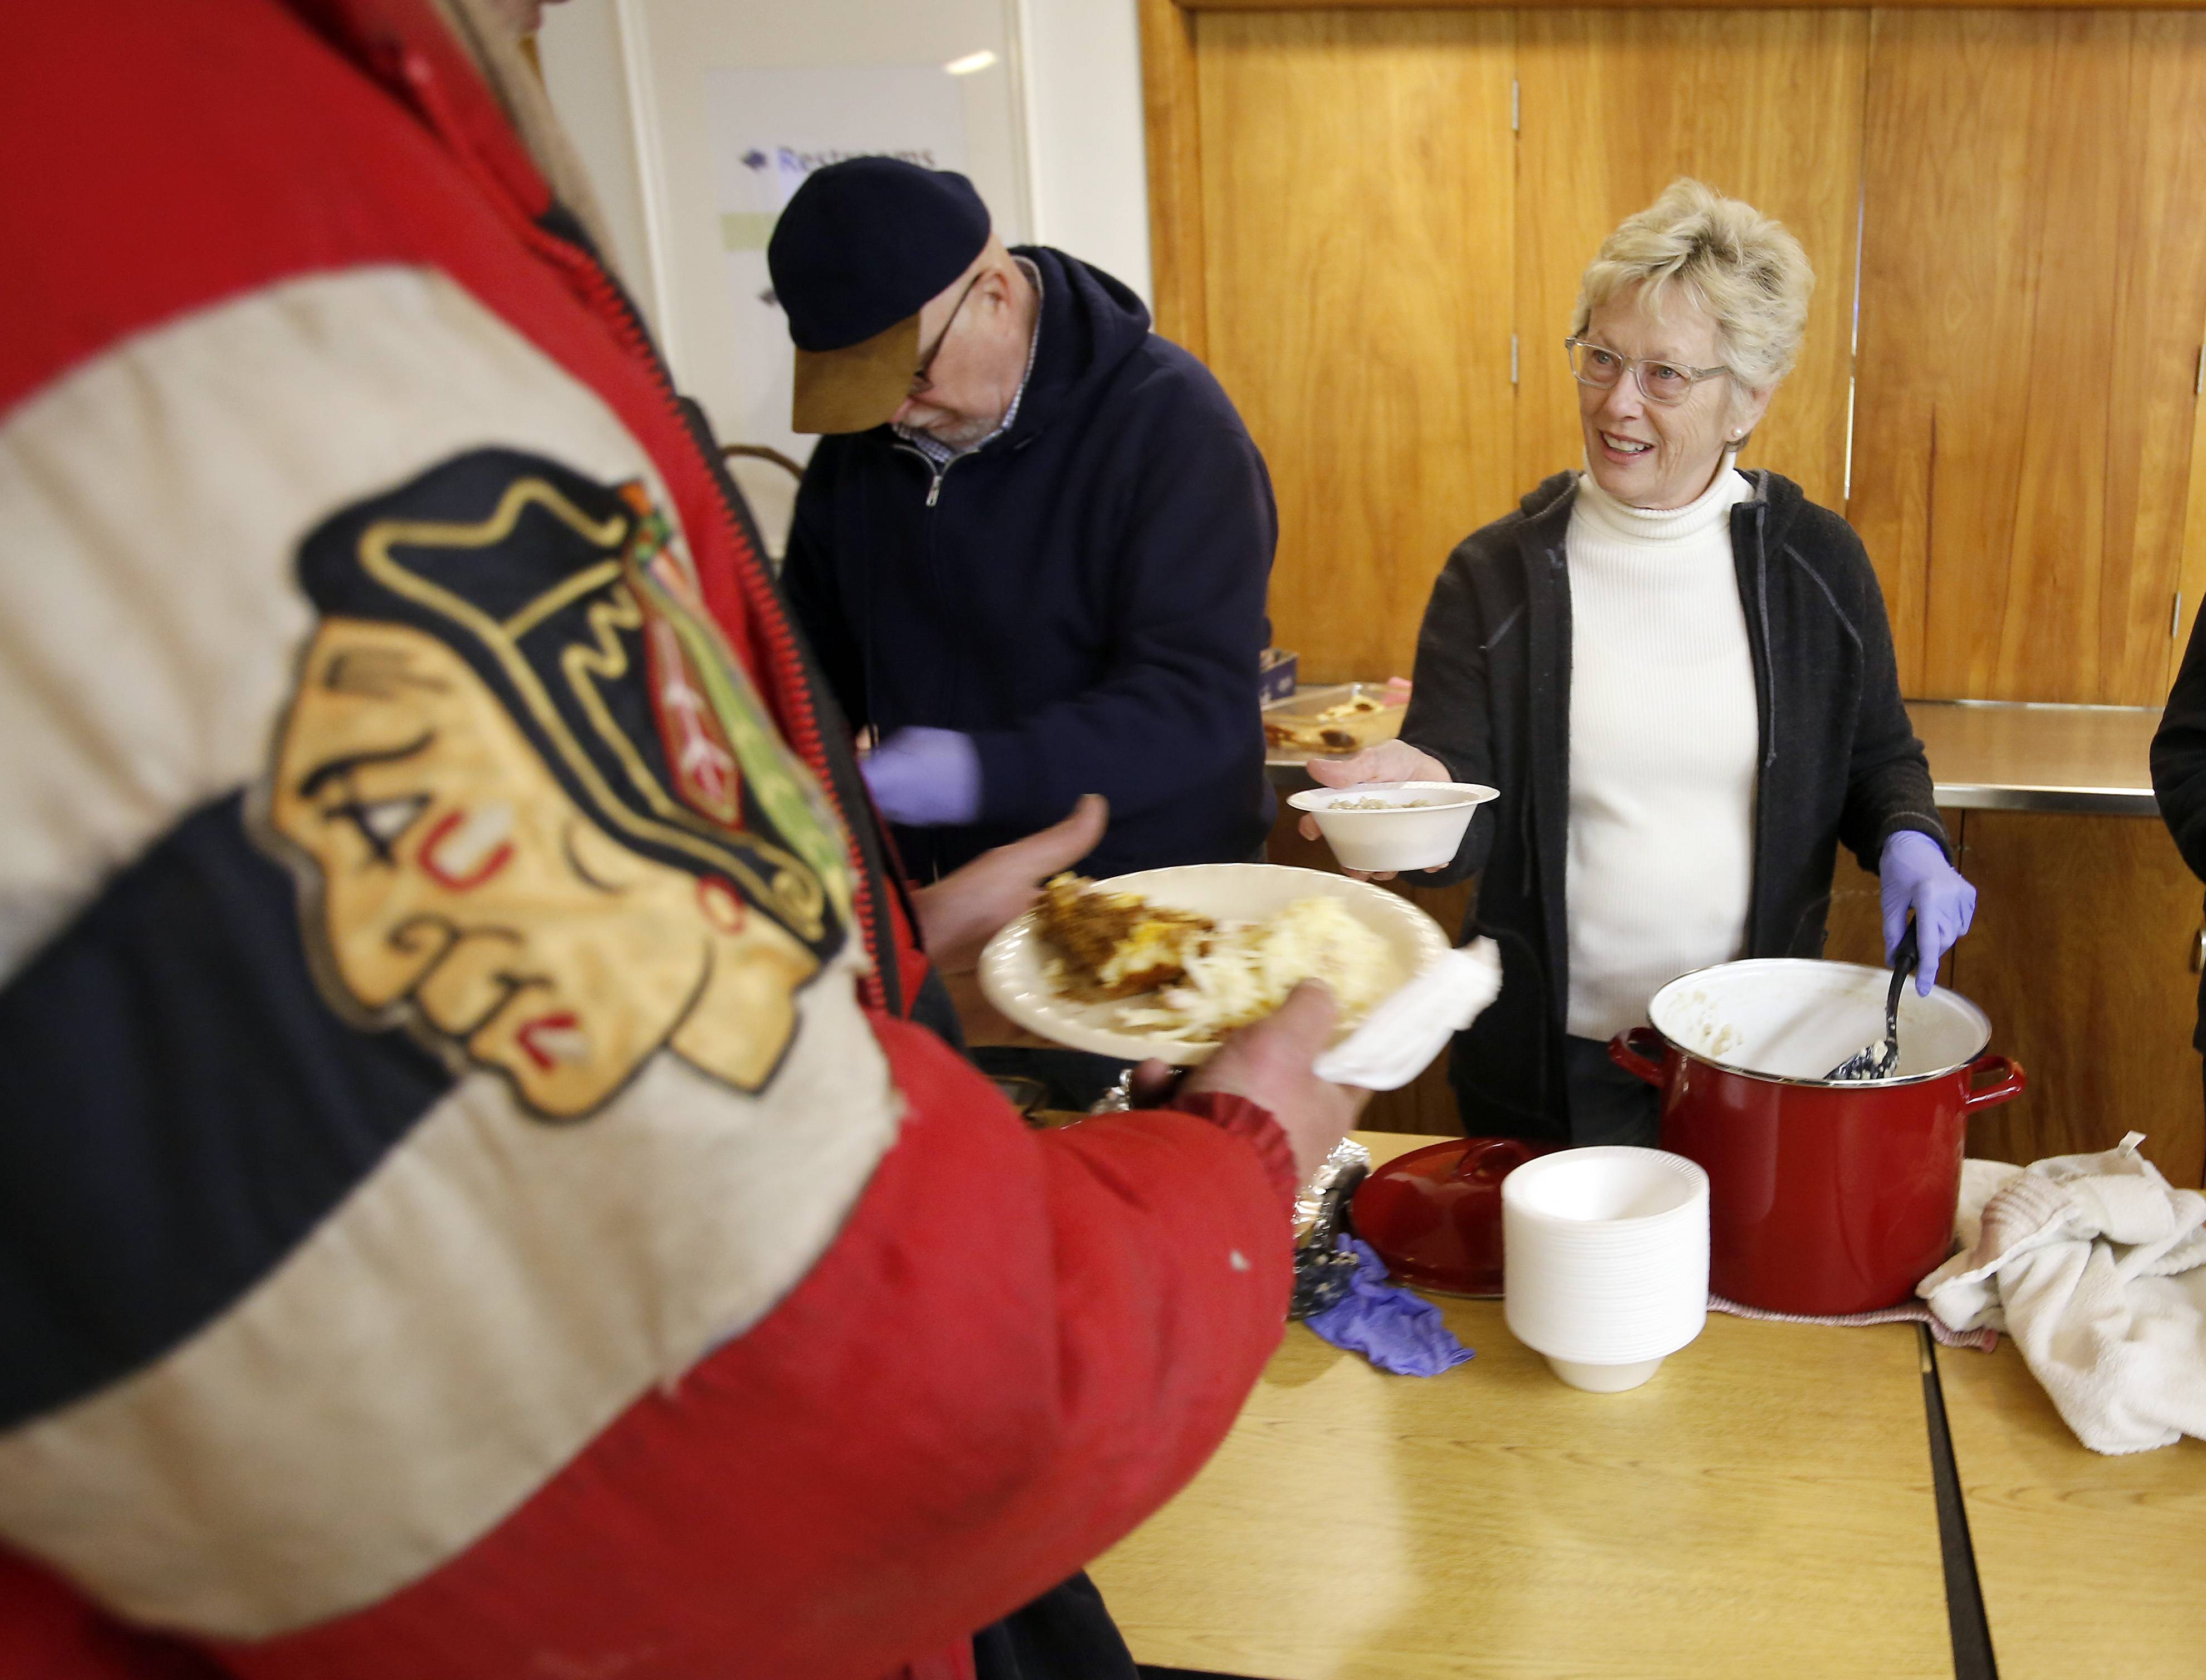 Kathy Long of West Dundee hands out some hot oatmeal as volunteers from all over serve a hot breakfast to the homeless at Vineyard Church, in Elgin.